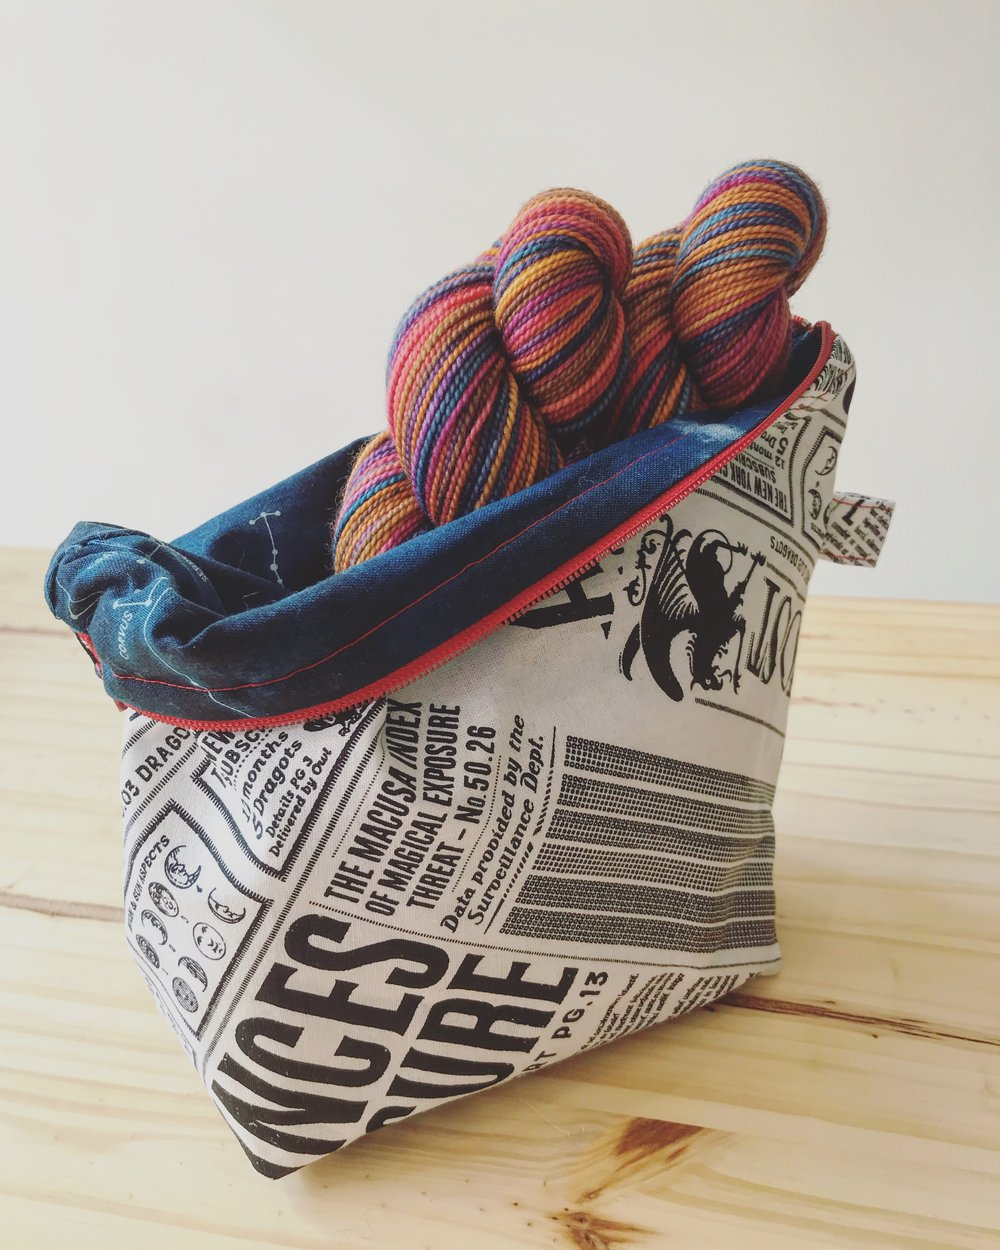 Handmade Project bags by jackie valdez Exclusive Hand dyed yarn by Rhichard Devrieze Image © firefly fiber arts studio